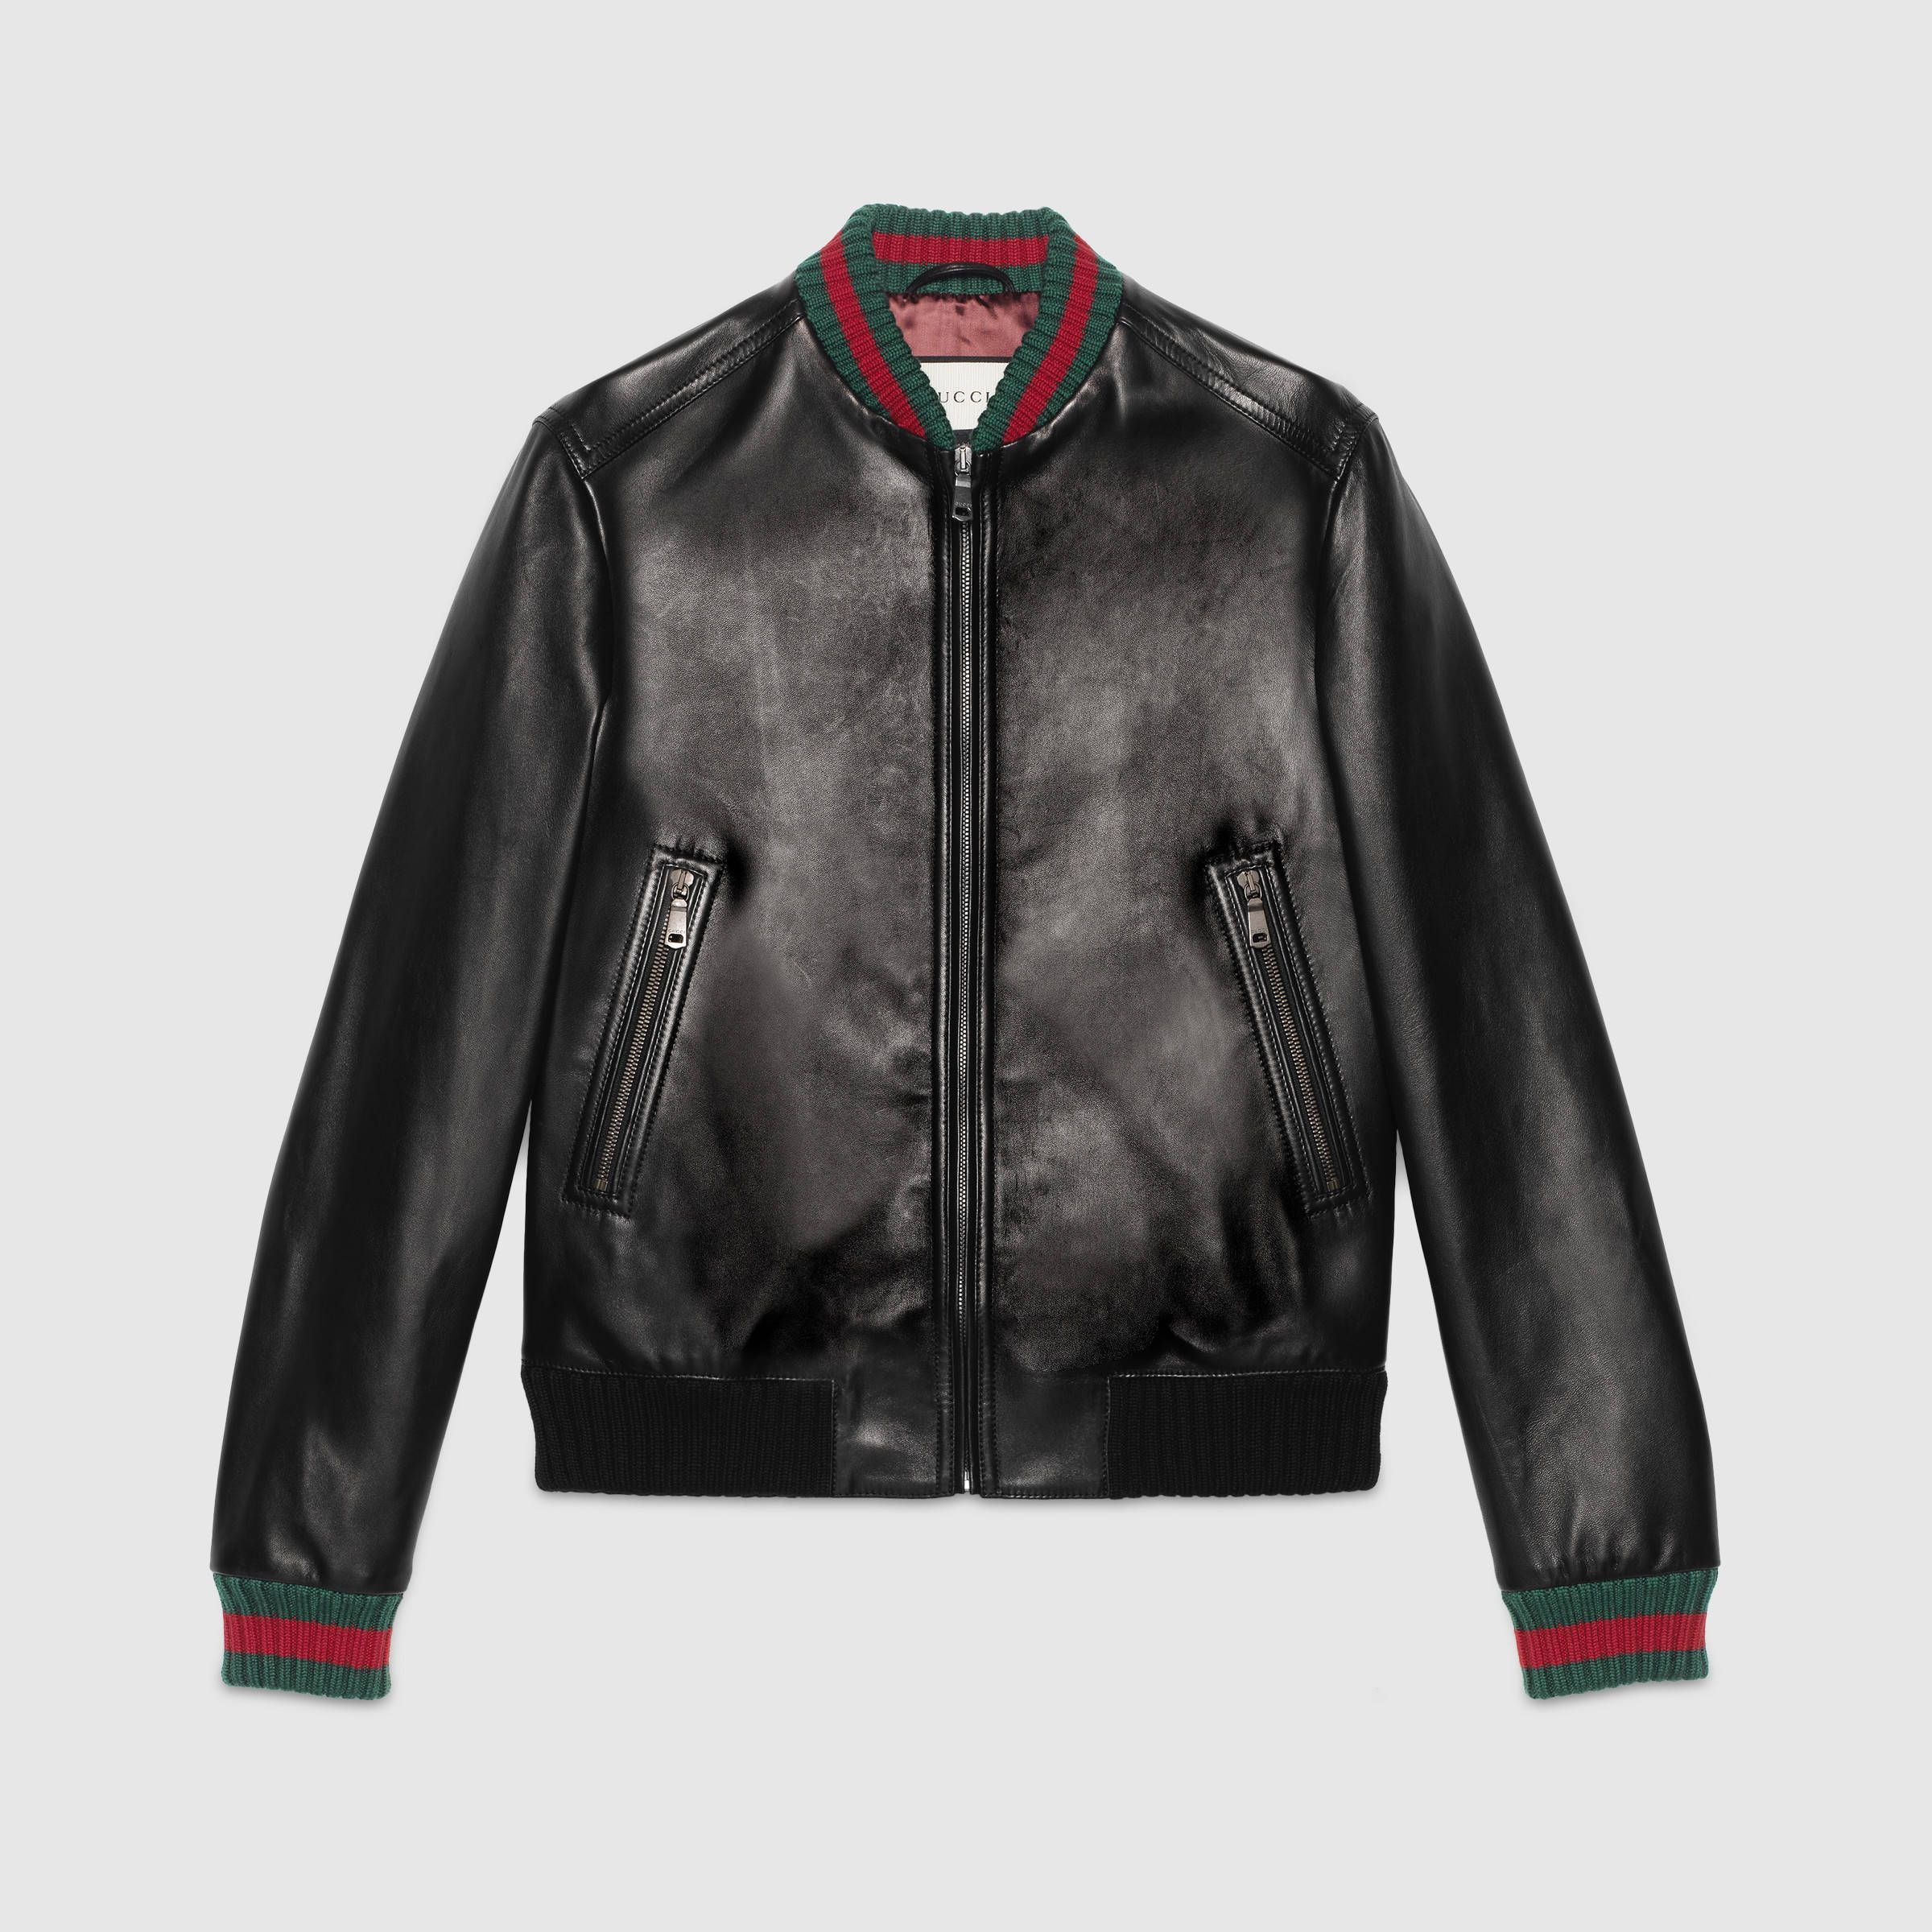 Gucci Leather Jacket With Web Gucci Leather Jacket Leather Bomber Jacket Jackets Men Fashion [ 2400 x 2400 Pixel ]